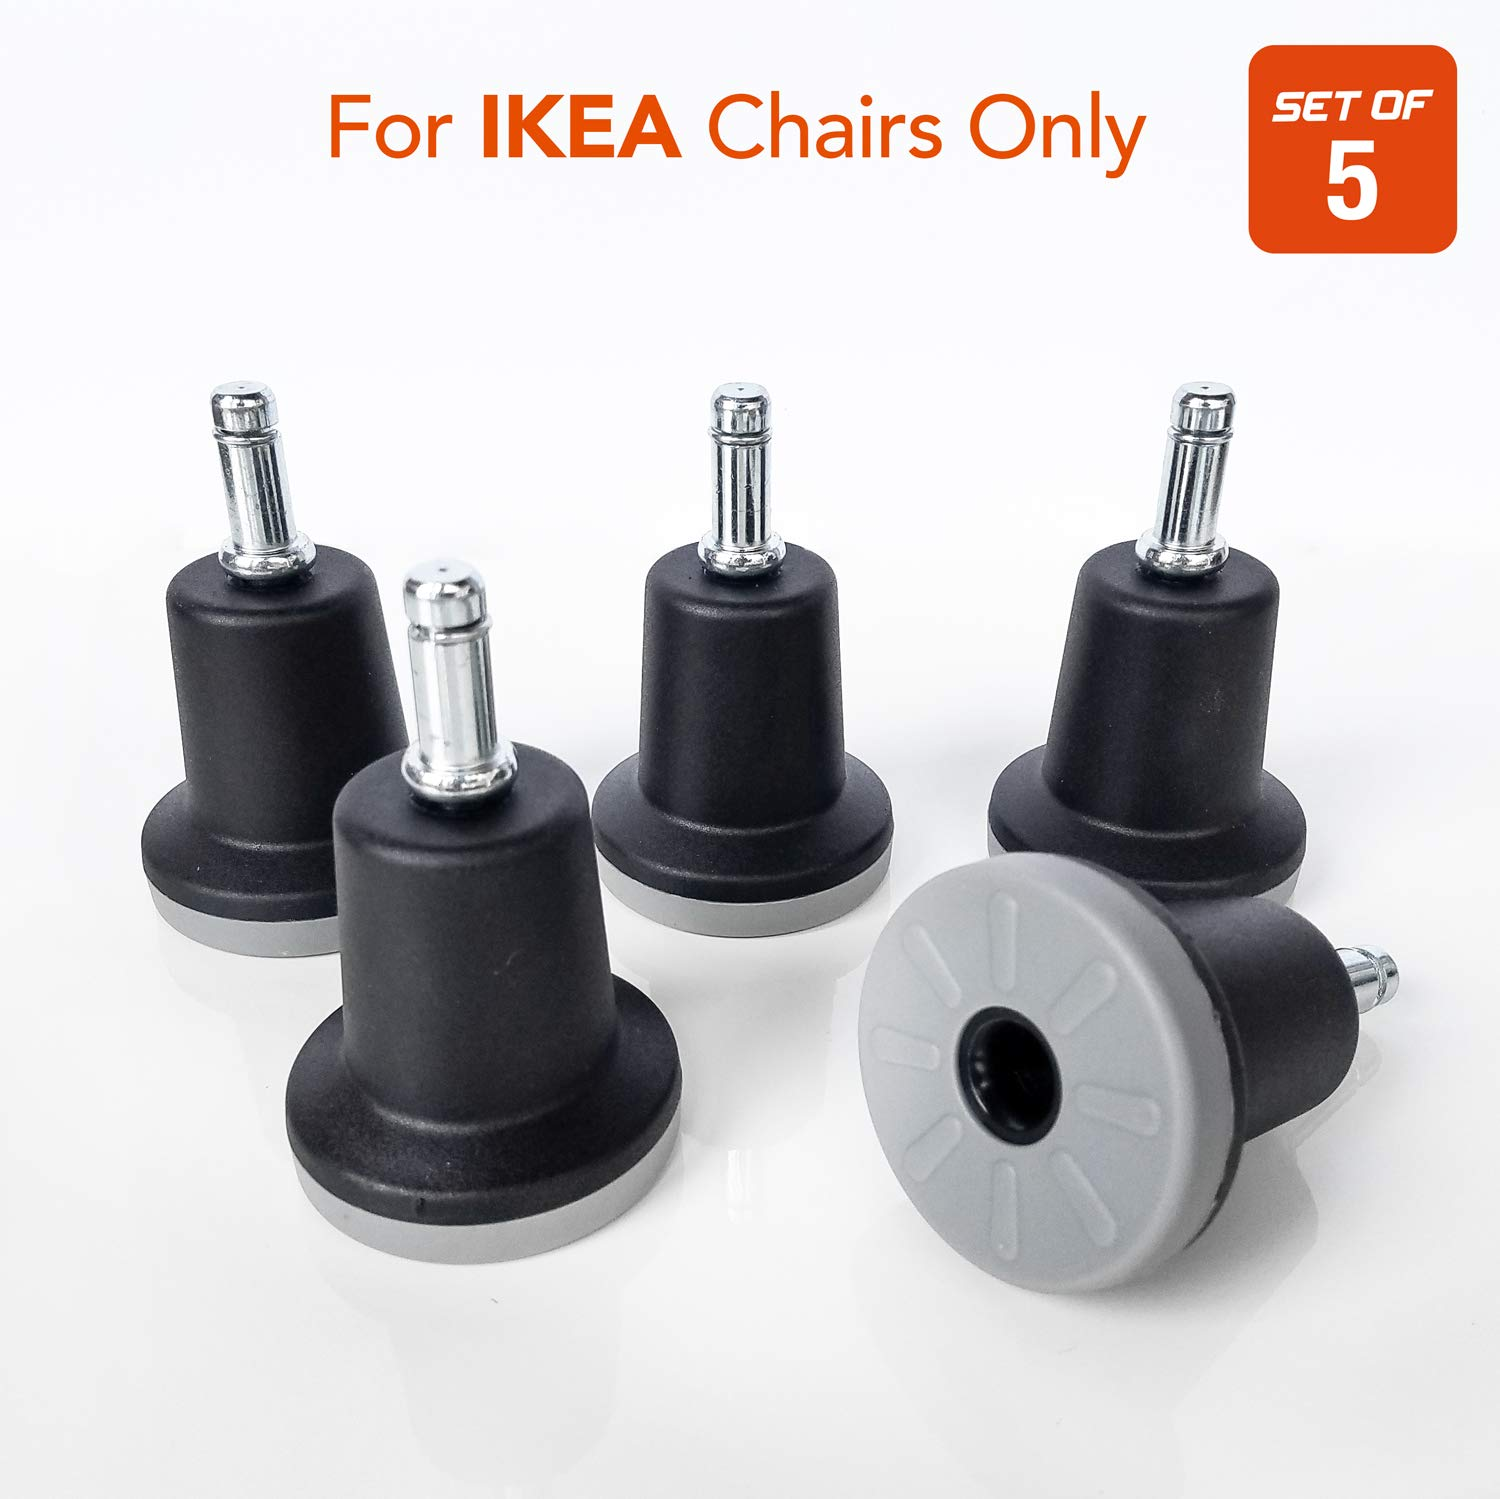 Bell Glides Office Chair Wheels Replacement Compatible with (IKEA Office Chairs Only), 10mm Diameter Size Stem, Chair Casters Replacement (Polyurethane Bottom - High Profile)